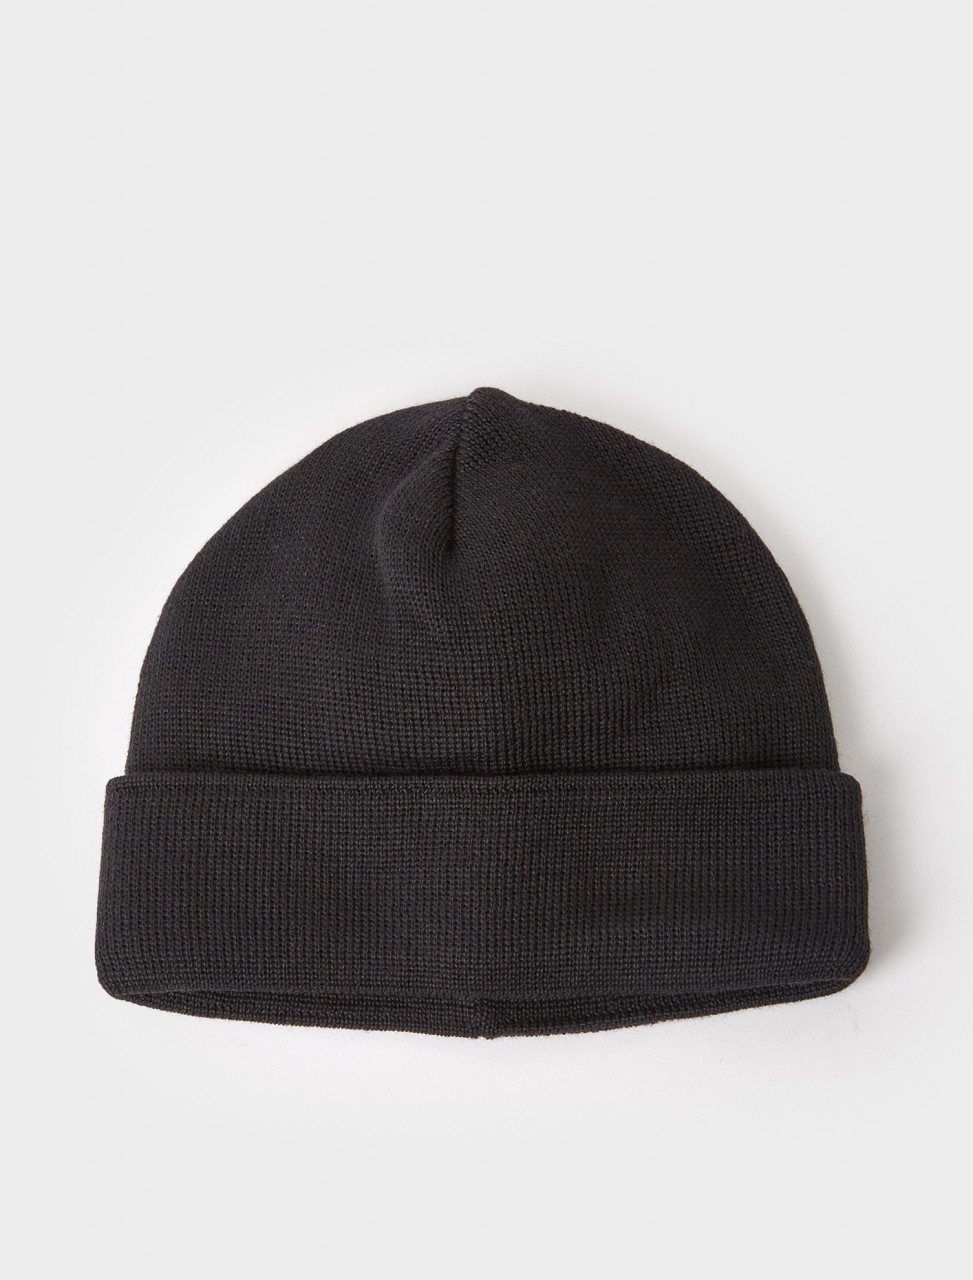 309200 ALASKA WOOL MIX BEANIE BLACK